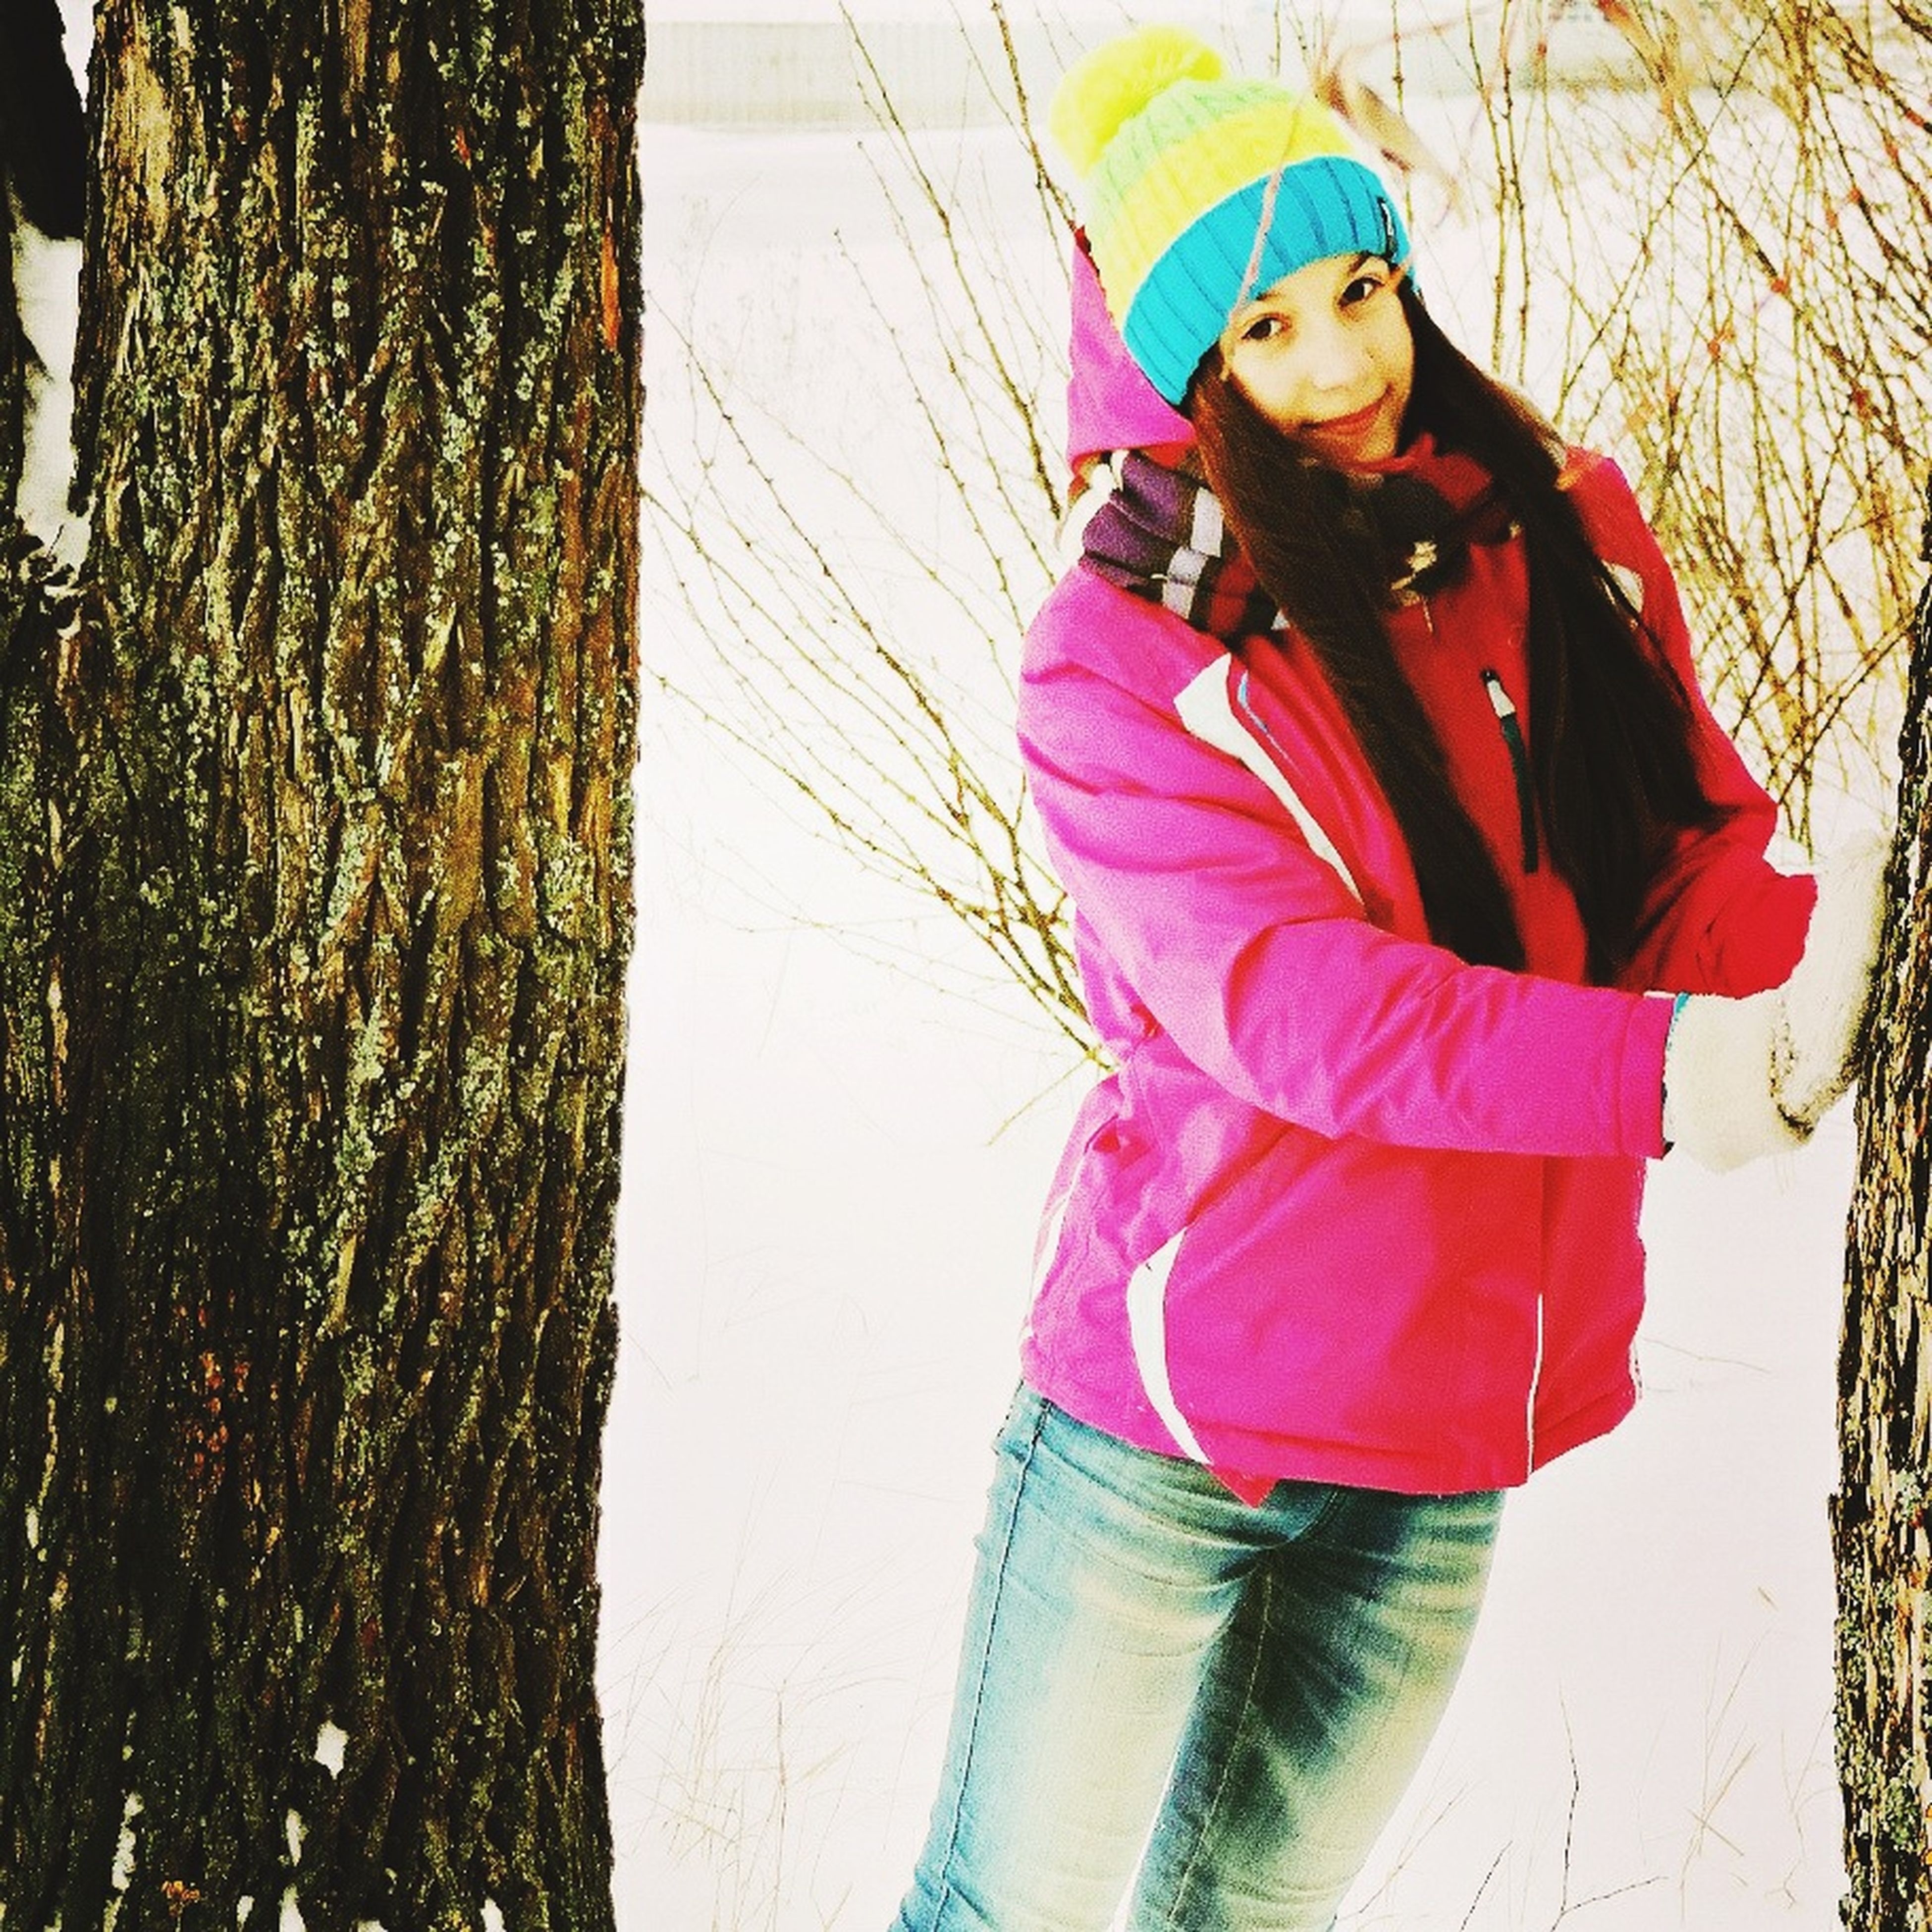 lifestyles, casual clothing, warm clothing, leisure activity, standing, young adult, front view, person, winter, three quarter length, looking at camera, cold temperature, snow, young women, portrait, season, jacket, full length